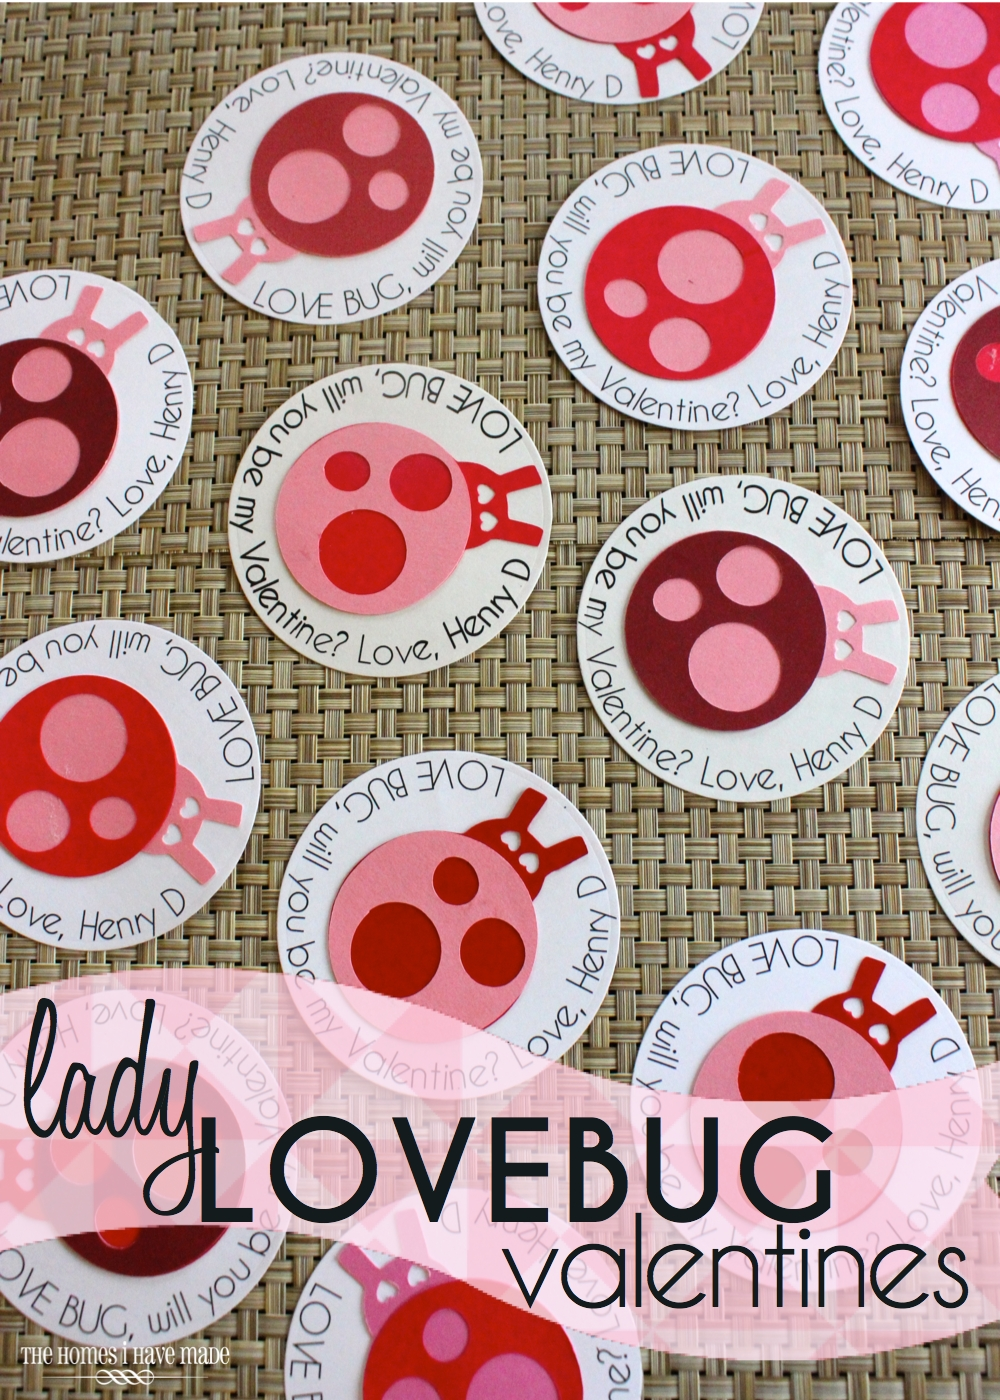 Lady Lovebugs-001